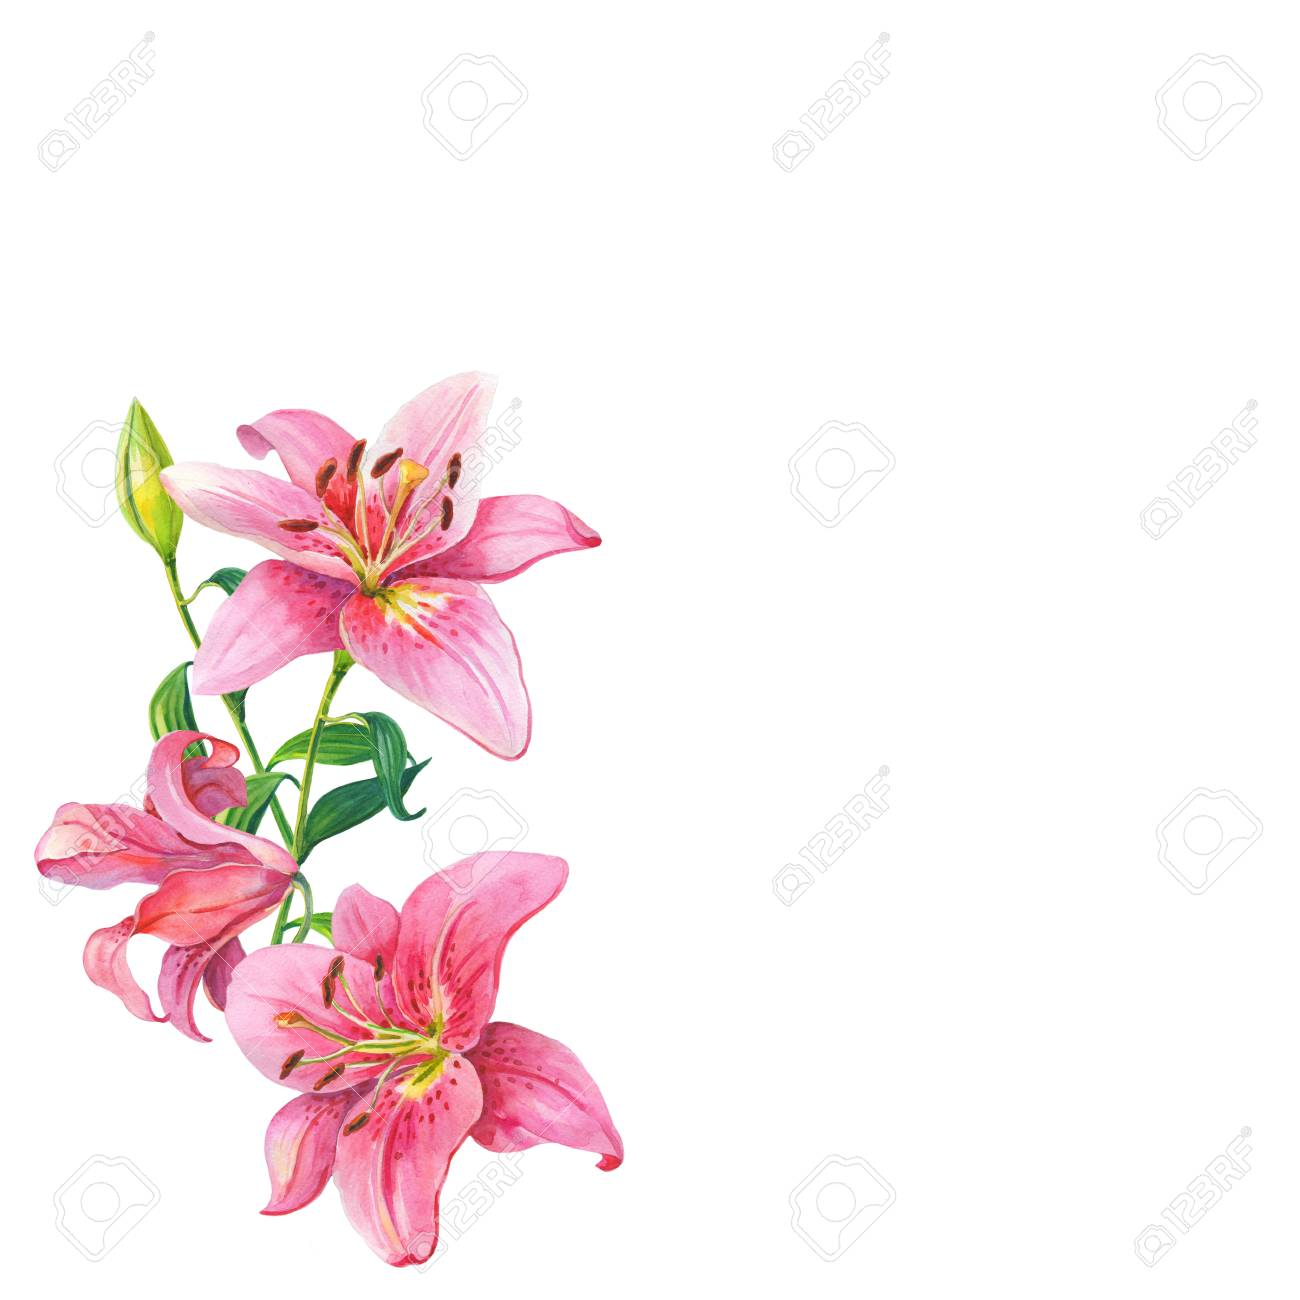 Pink liliesfloral watercolor flowers wreath stock photo picture pink liliesfloral watercolor flowers wreath stock photo 90791481 izmirmasajfo